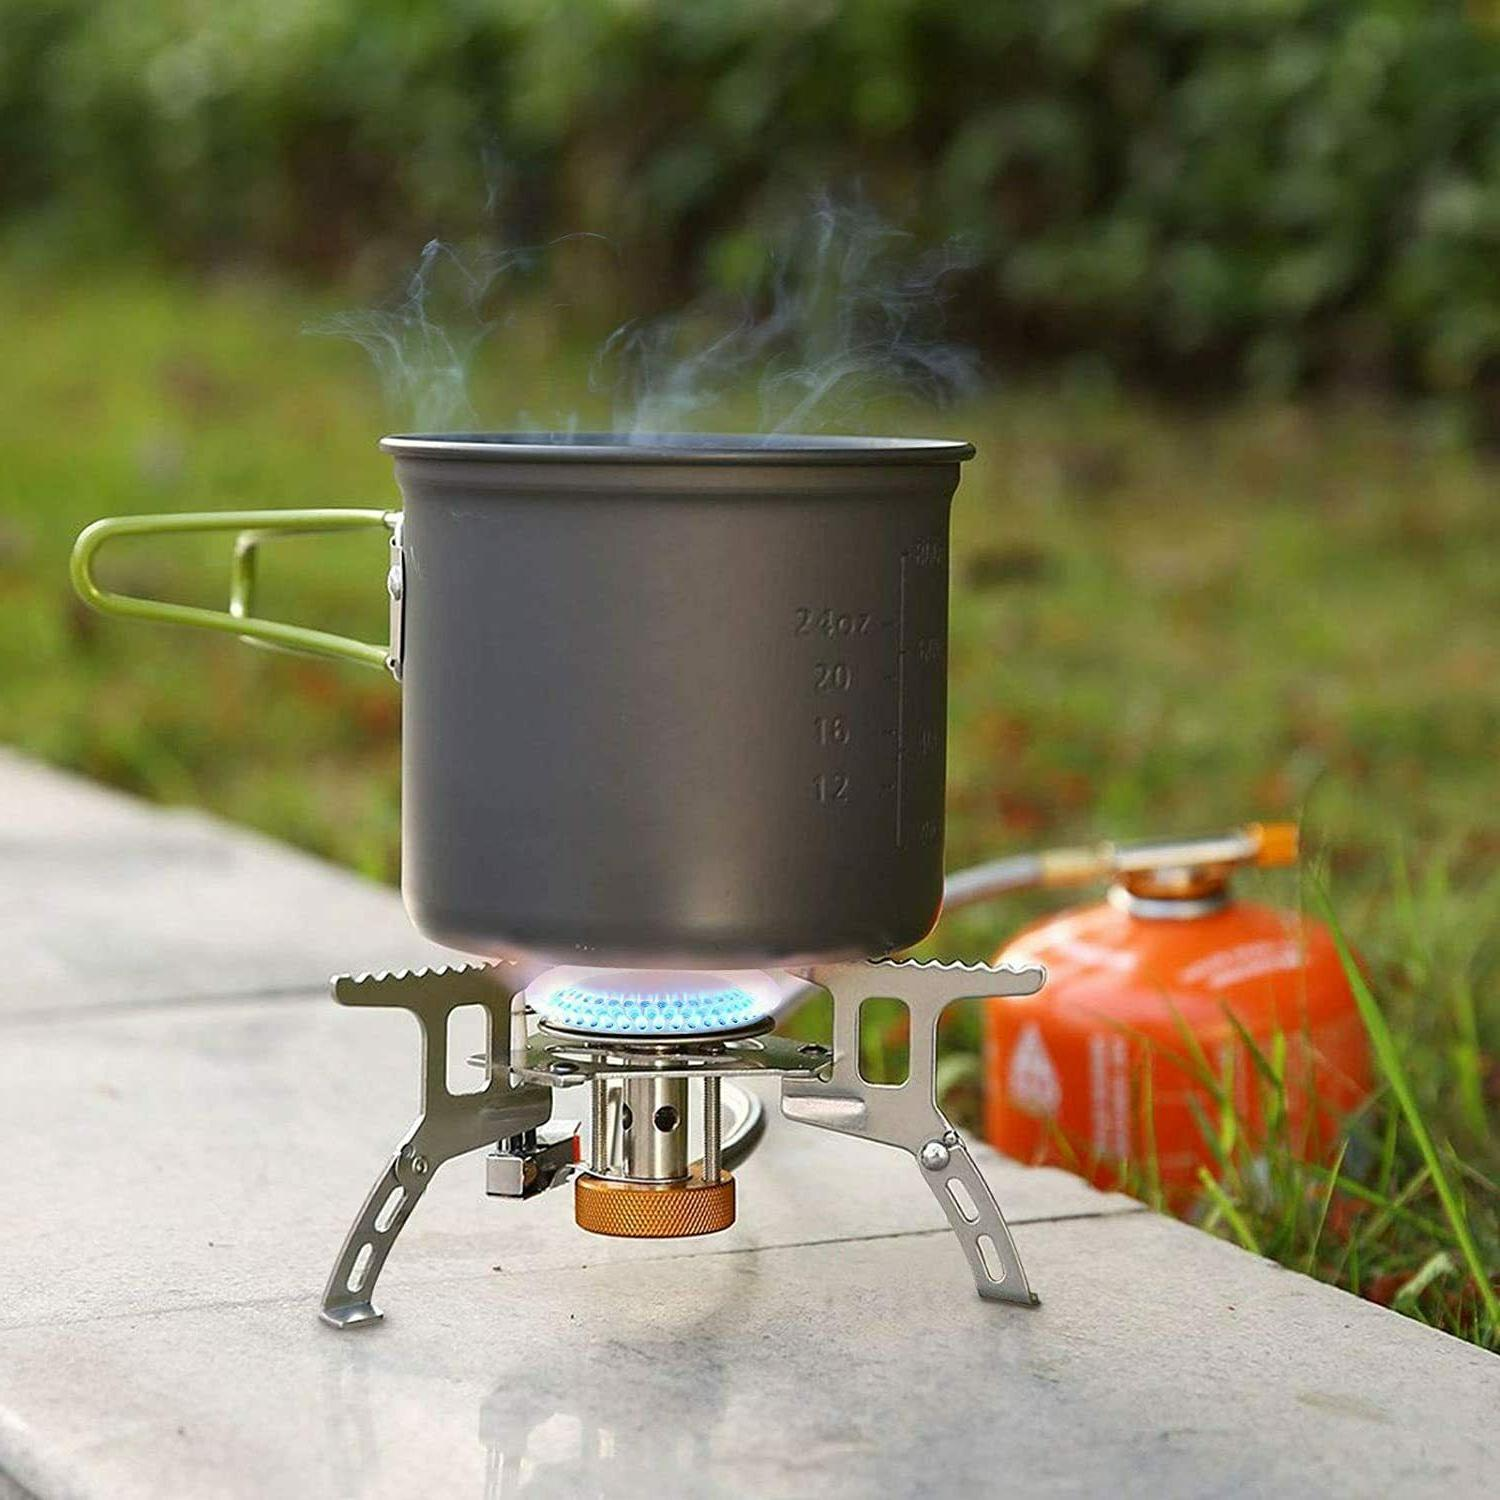 3700W Portable Backpacking Gas with Ignition, Burner,